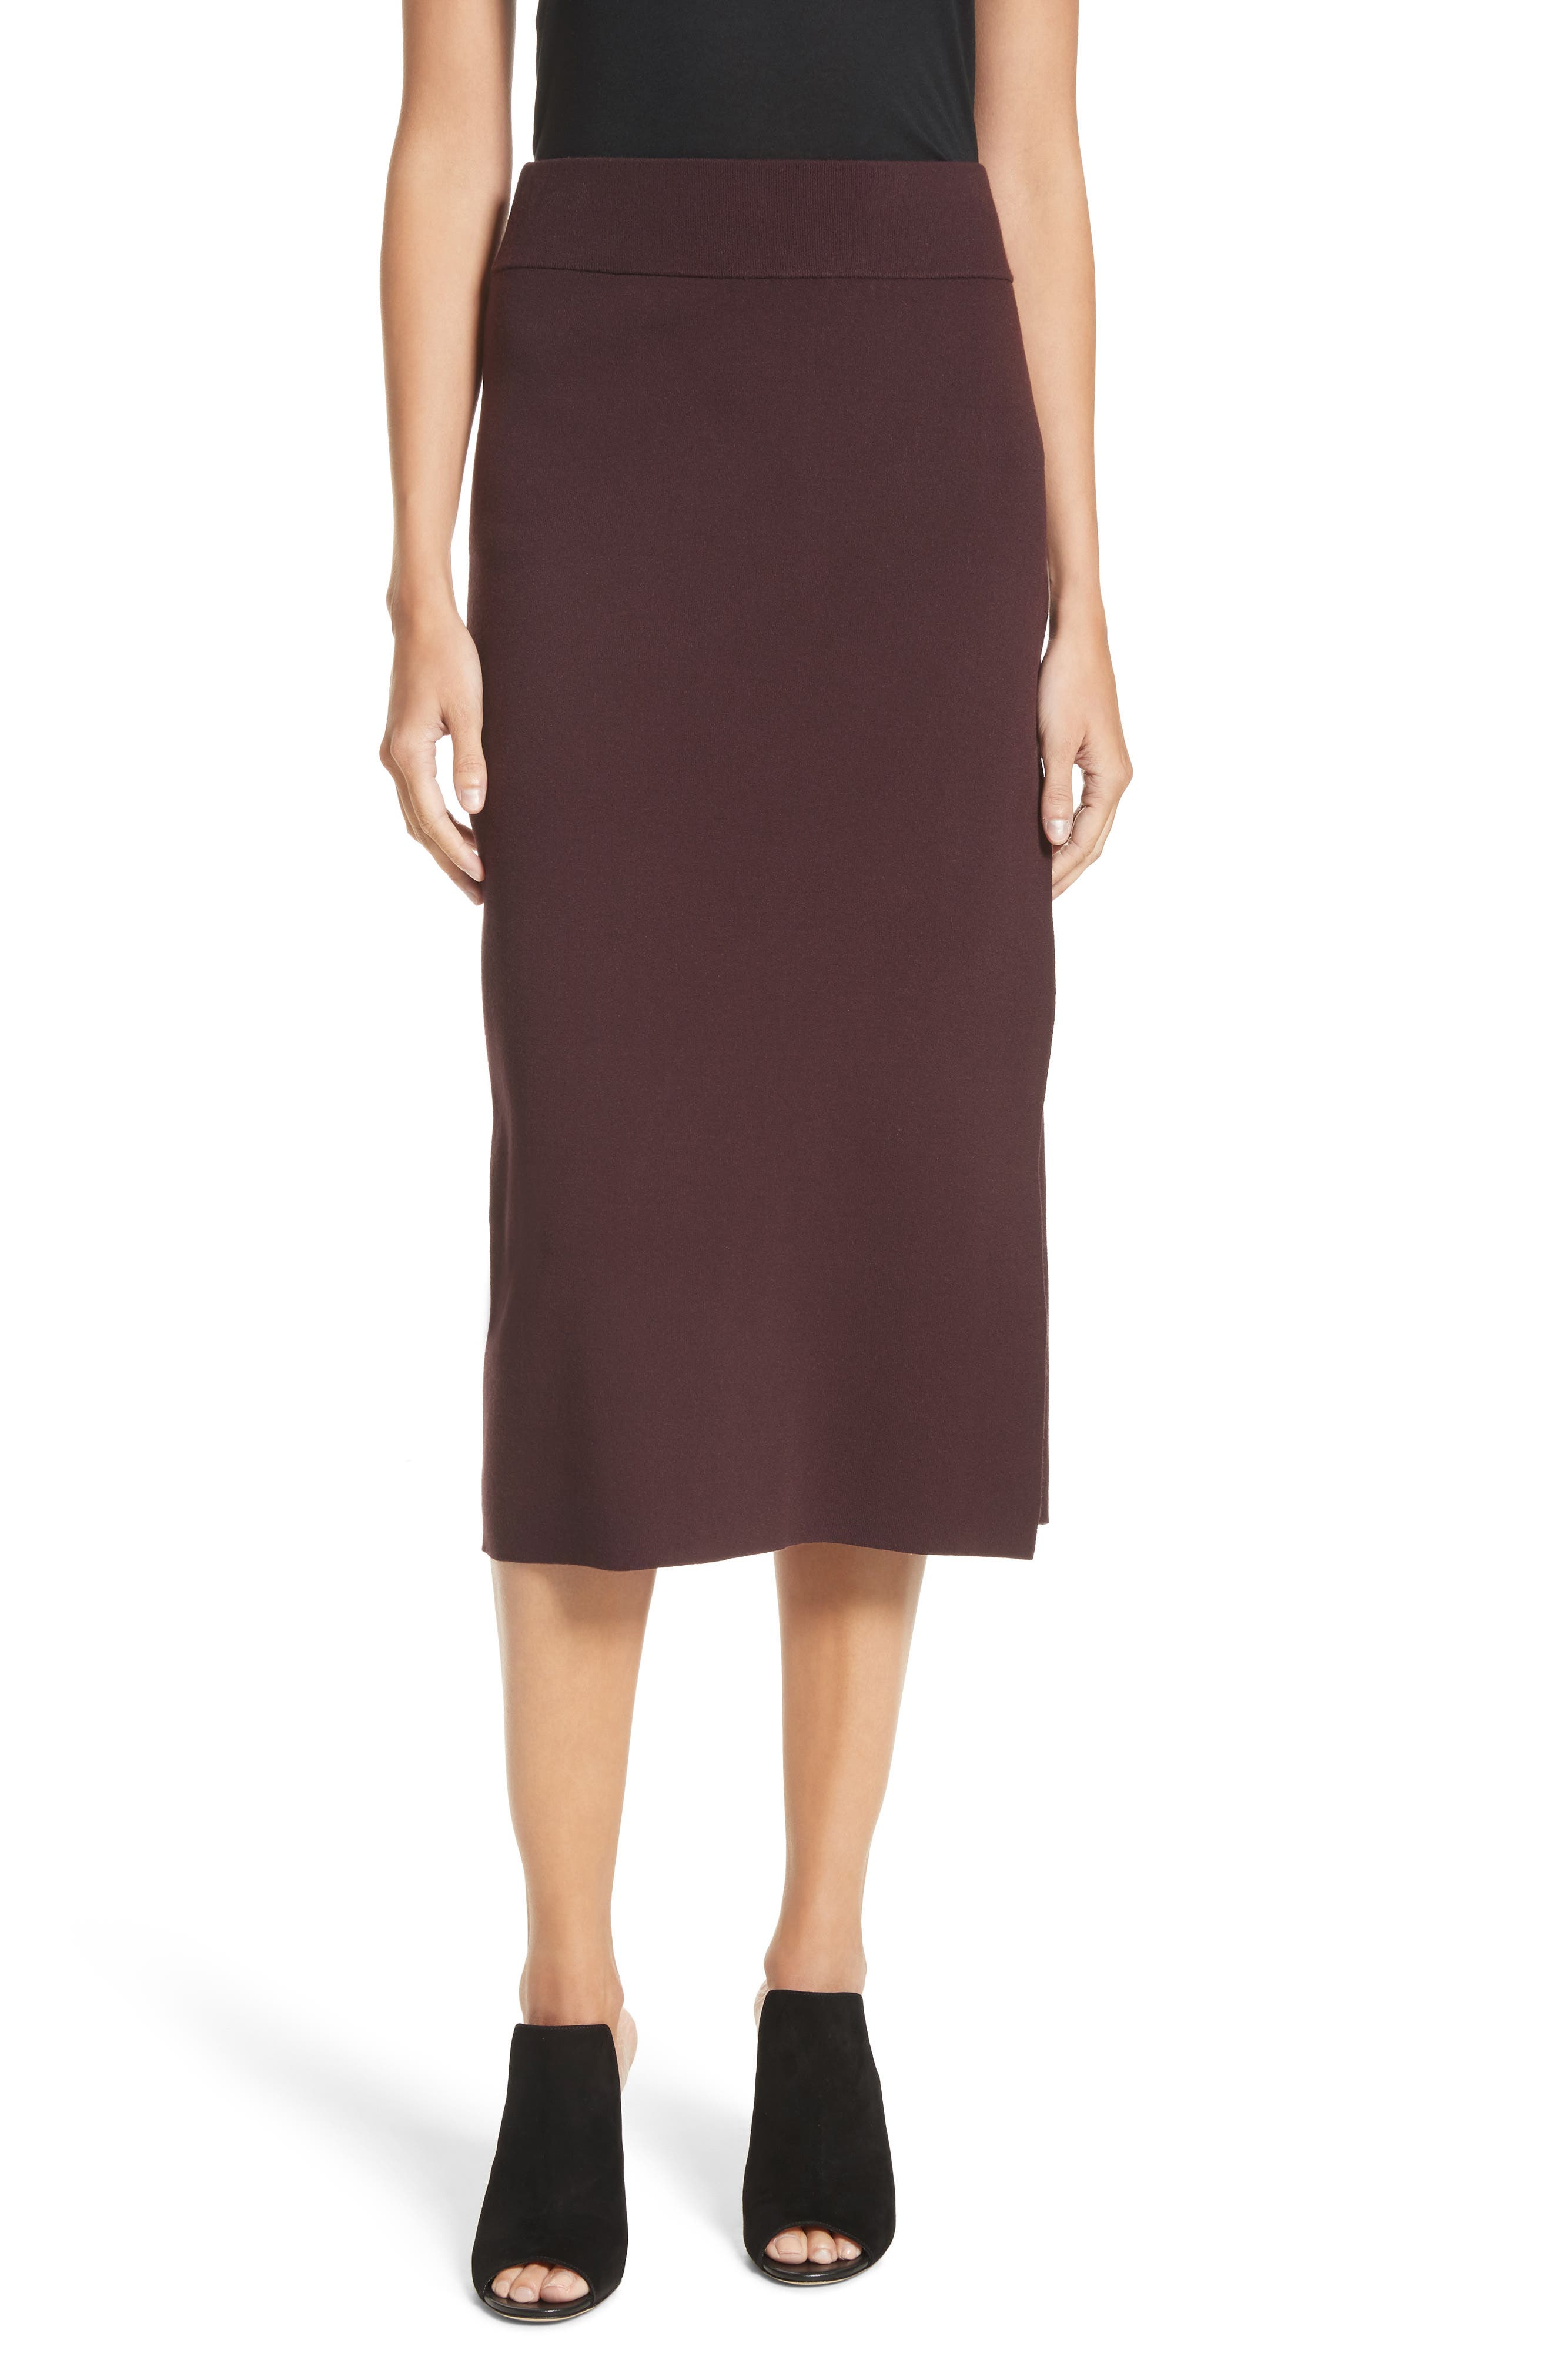 Smith Knit Pencil Skirt,                         Main,                         color, Raisin